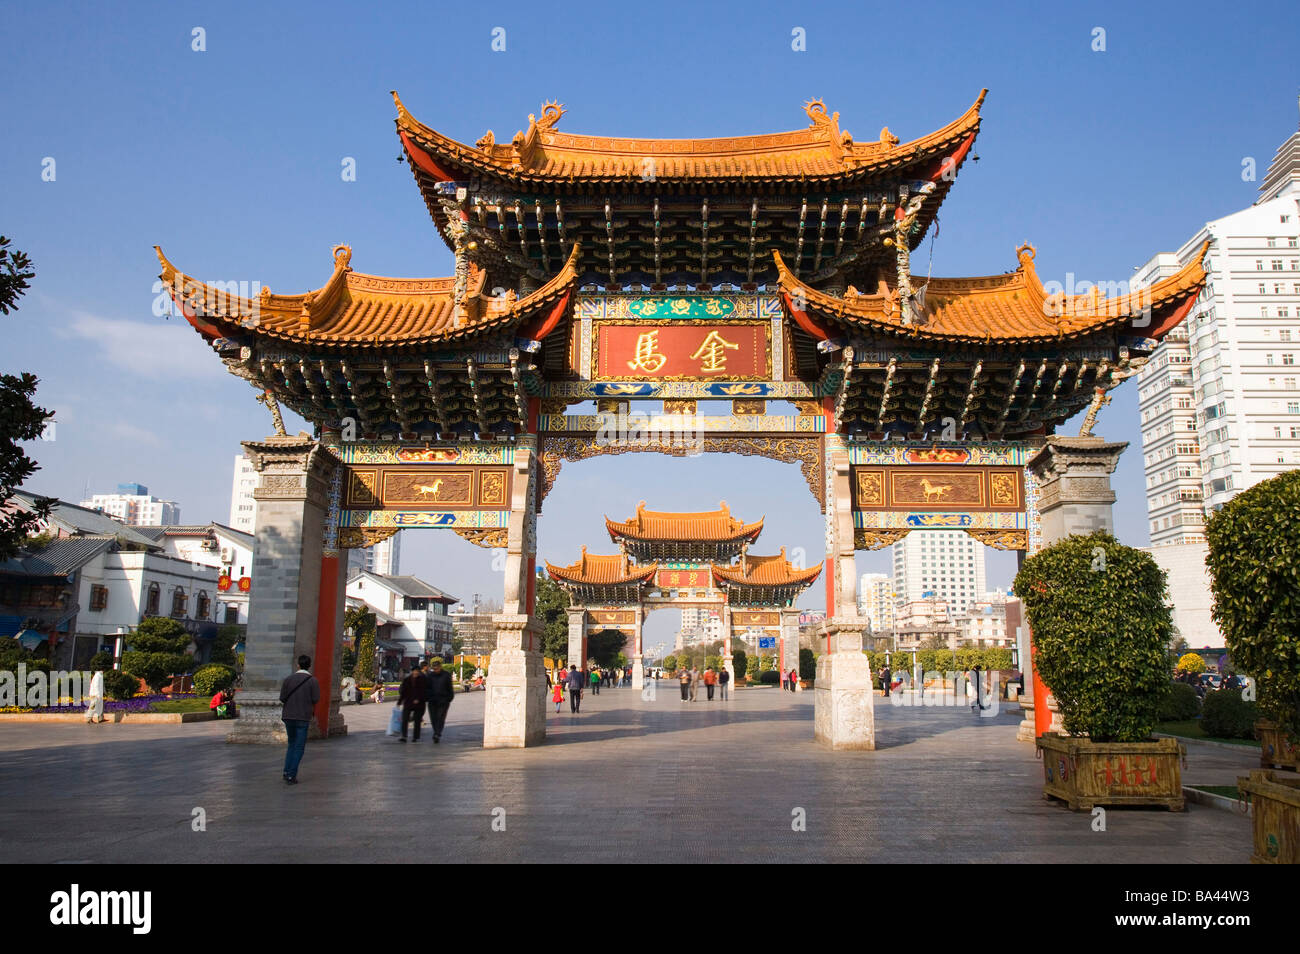 China Yunnan Province Kunming Golden Horse And Jade Rooster Archway Stock Photo